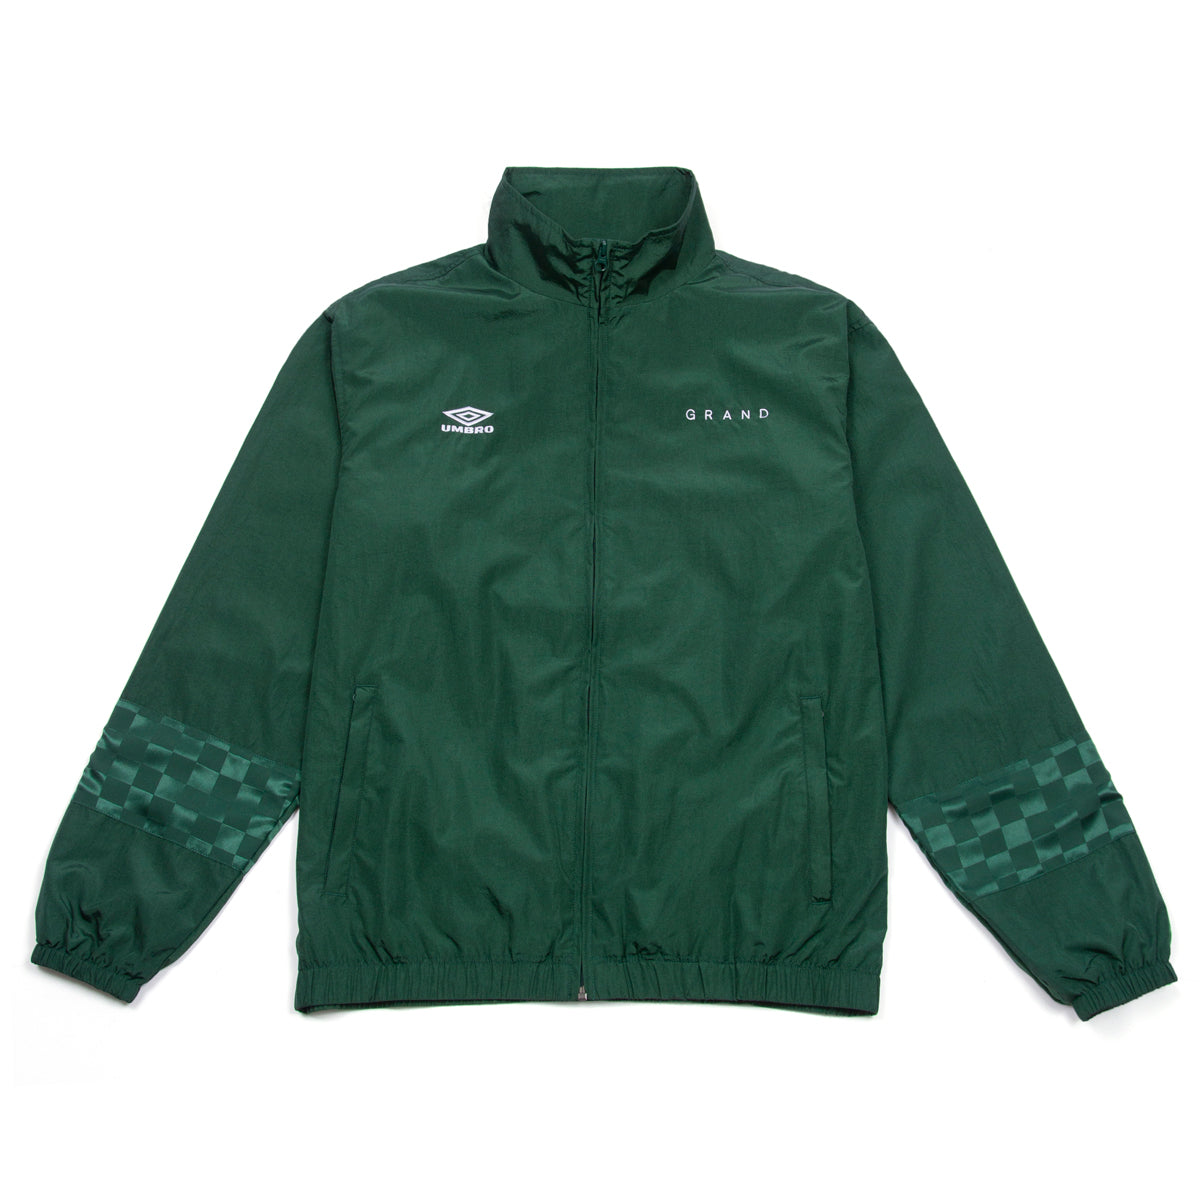 Grand Collection x Umbro Jacket Forest Green